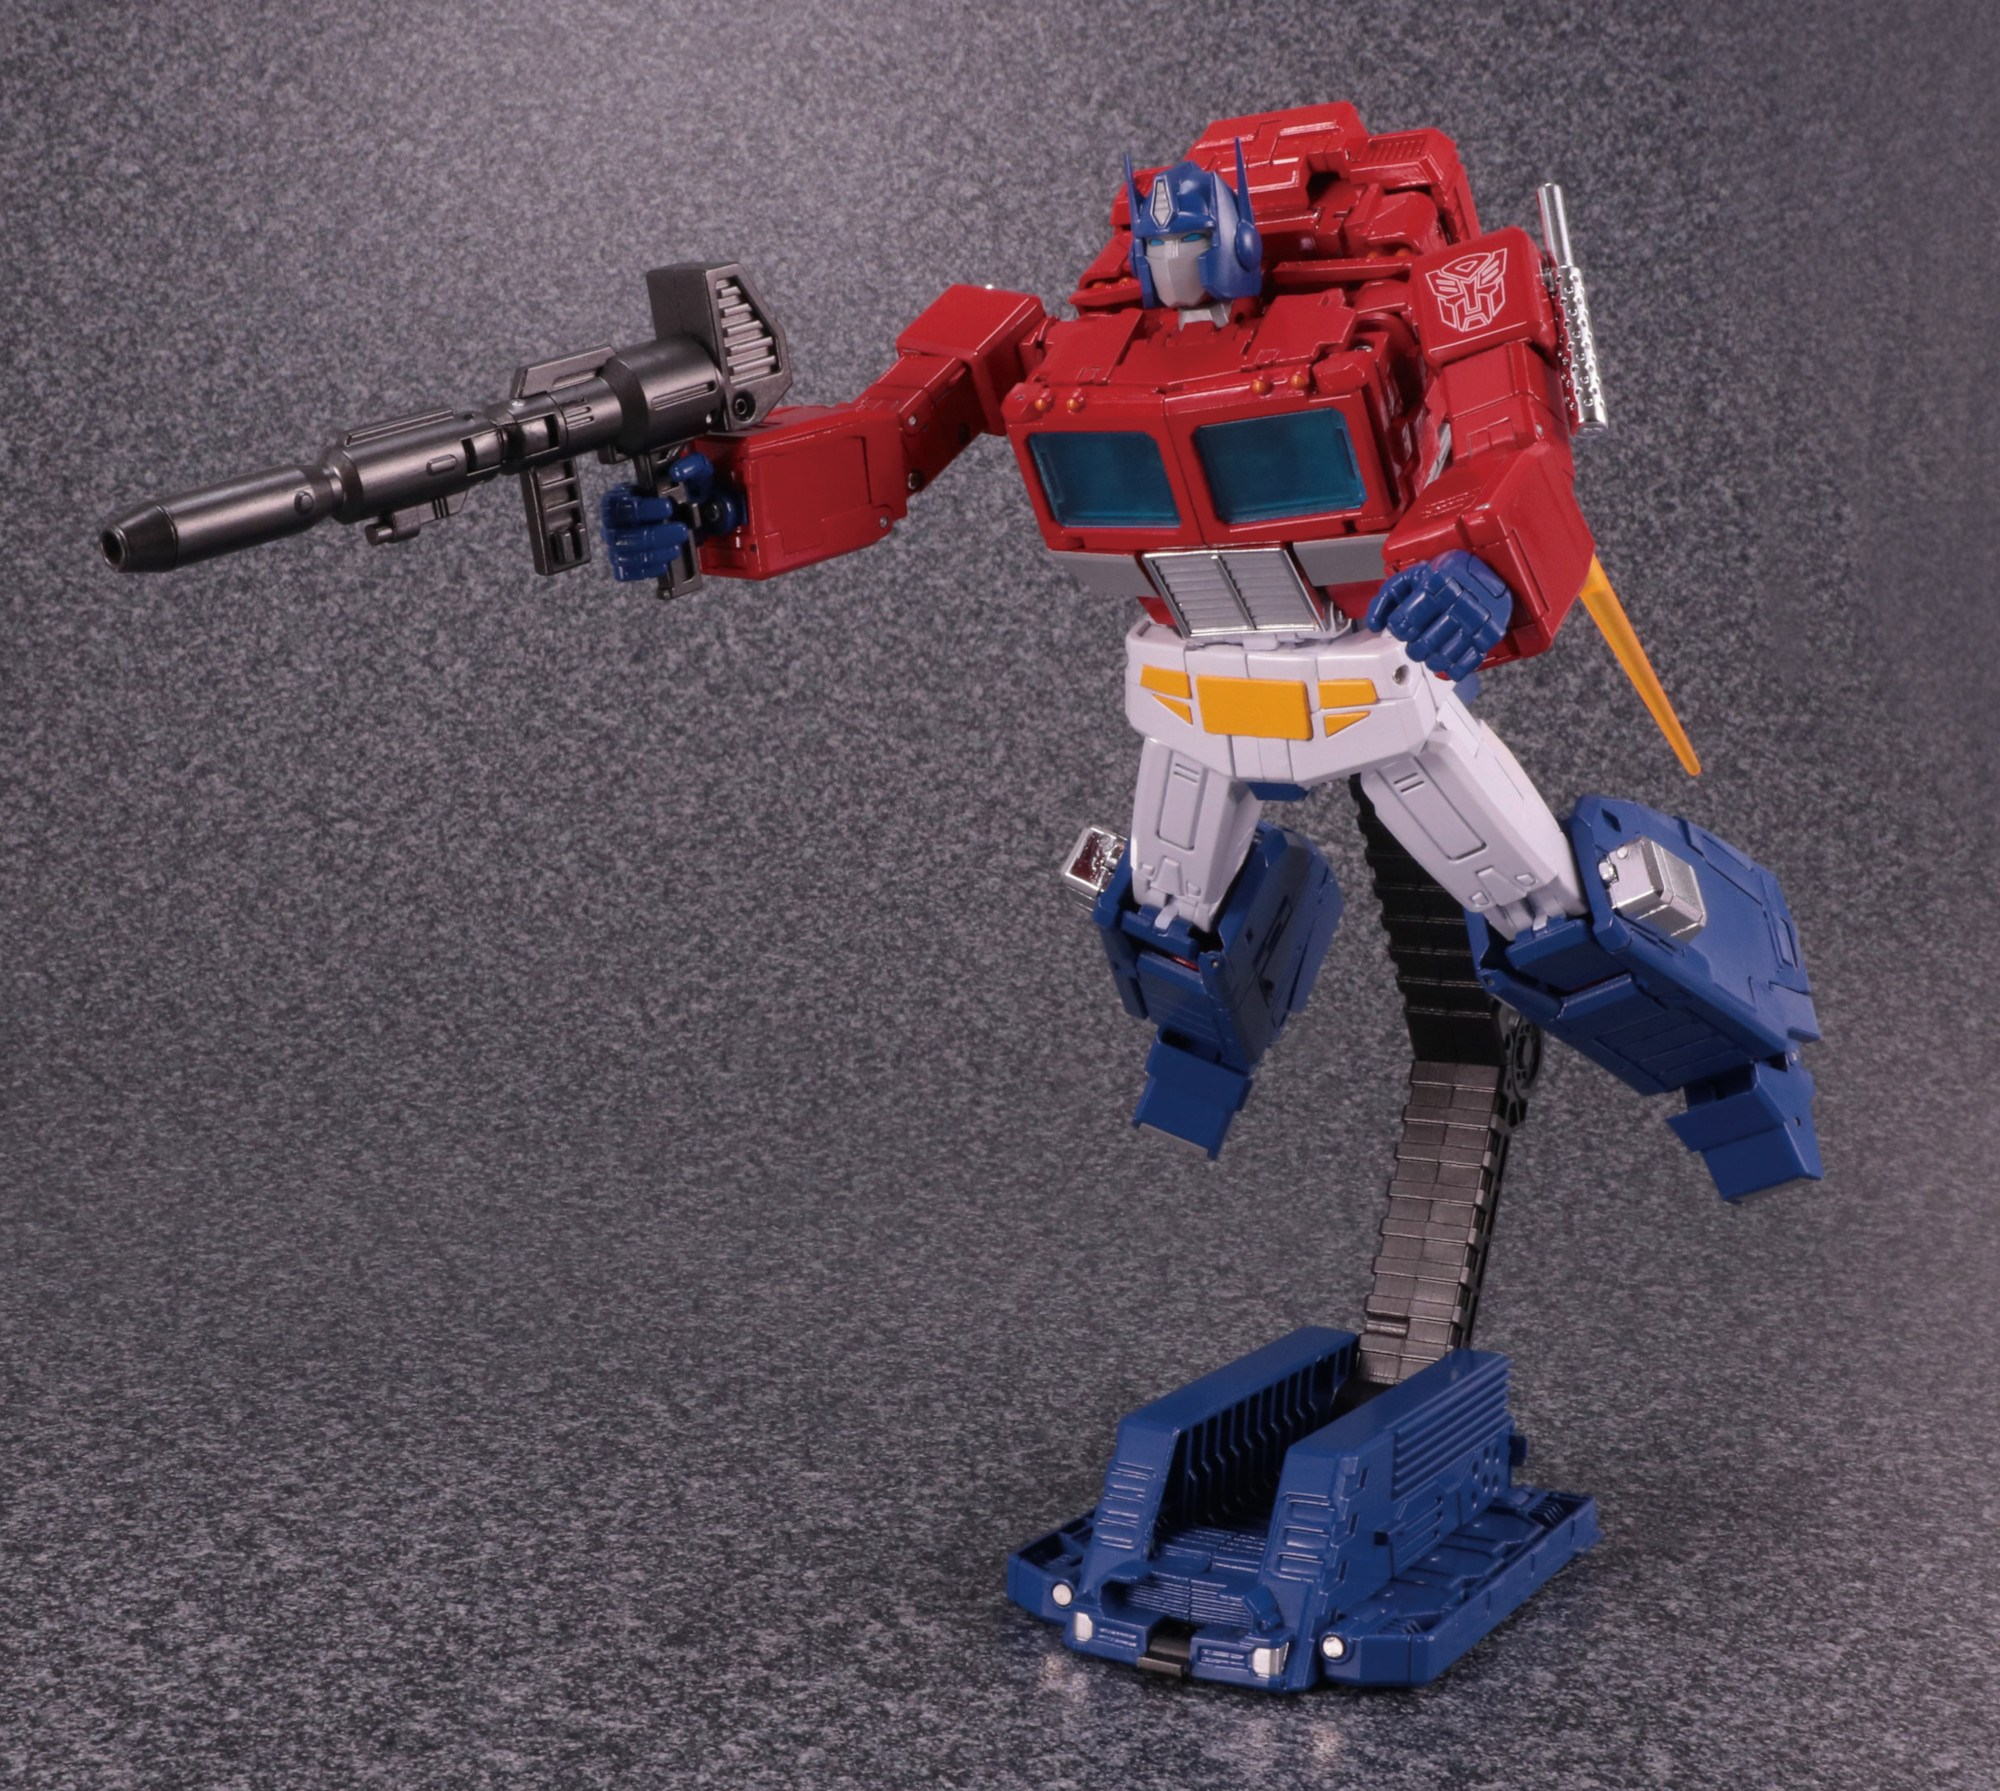 Hasbro-Takara-Transformers-Masterpiece-MP-44-Optimus-Prime-Version-3-Promo-19.jpg